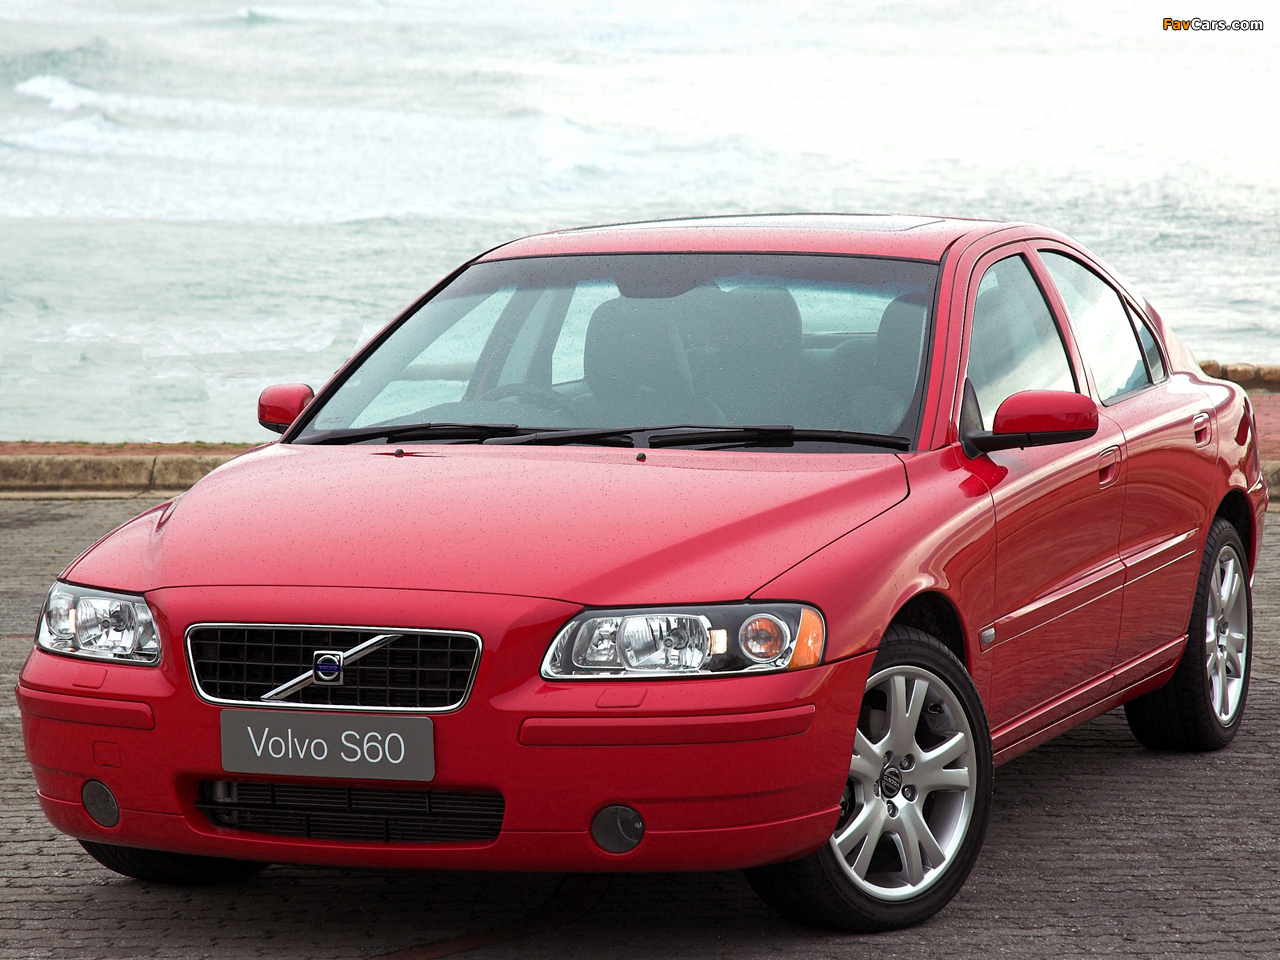 volvo s60 d5 za spec 2006 07 images 1280x960. Black Bedroom Furniture Sets. Home Design Ideas